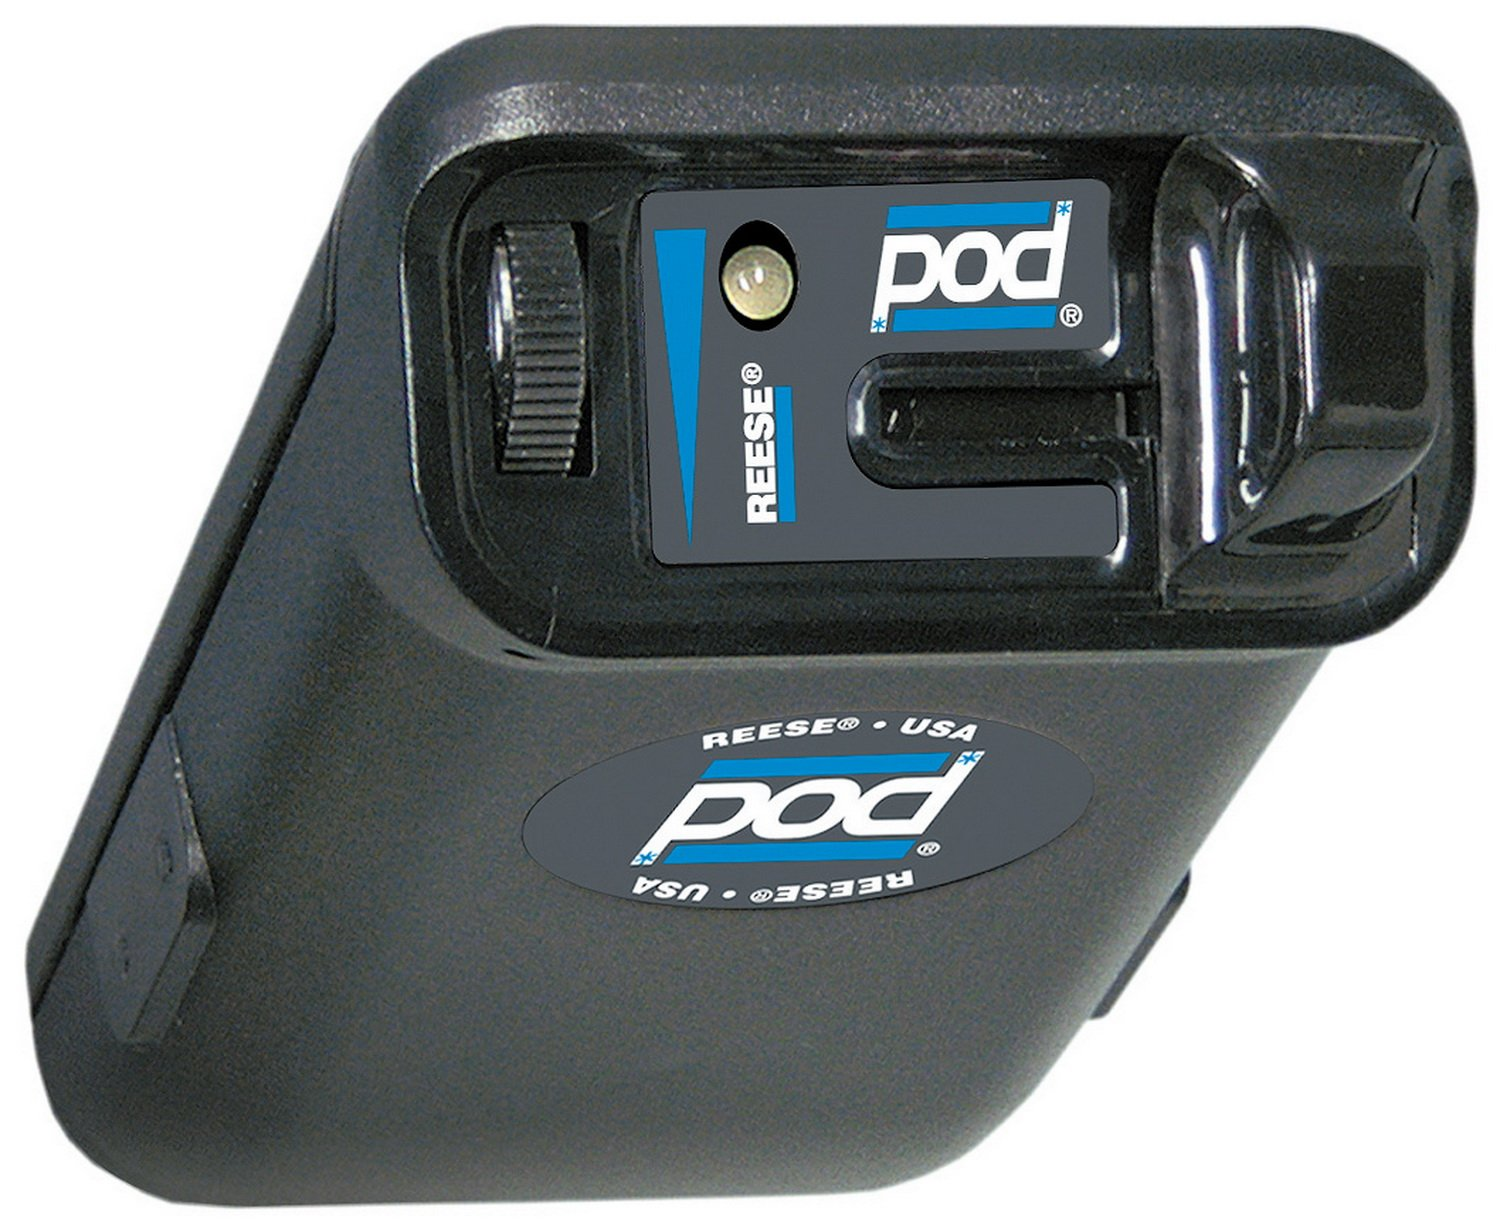 Reese Towpower 74377 Pod Brake control, Black by Reese Towpower